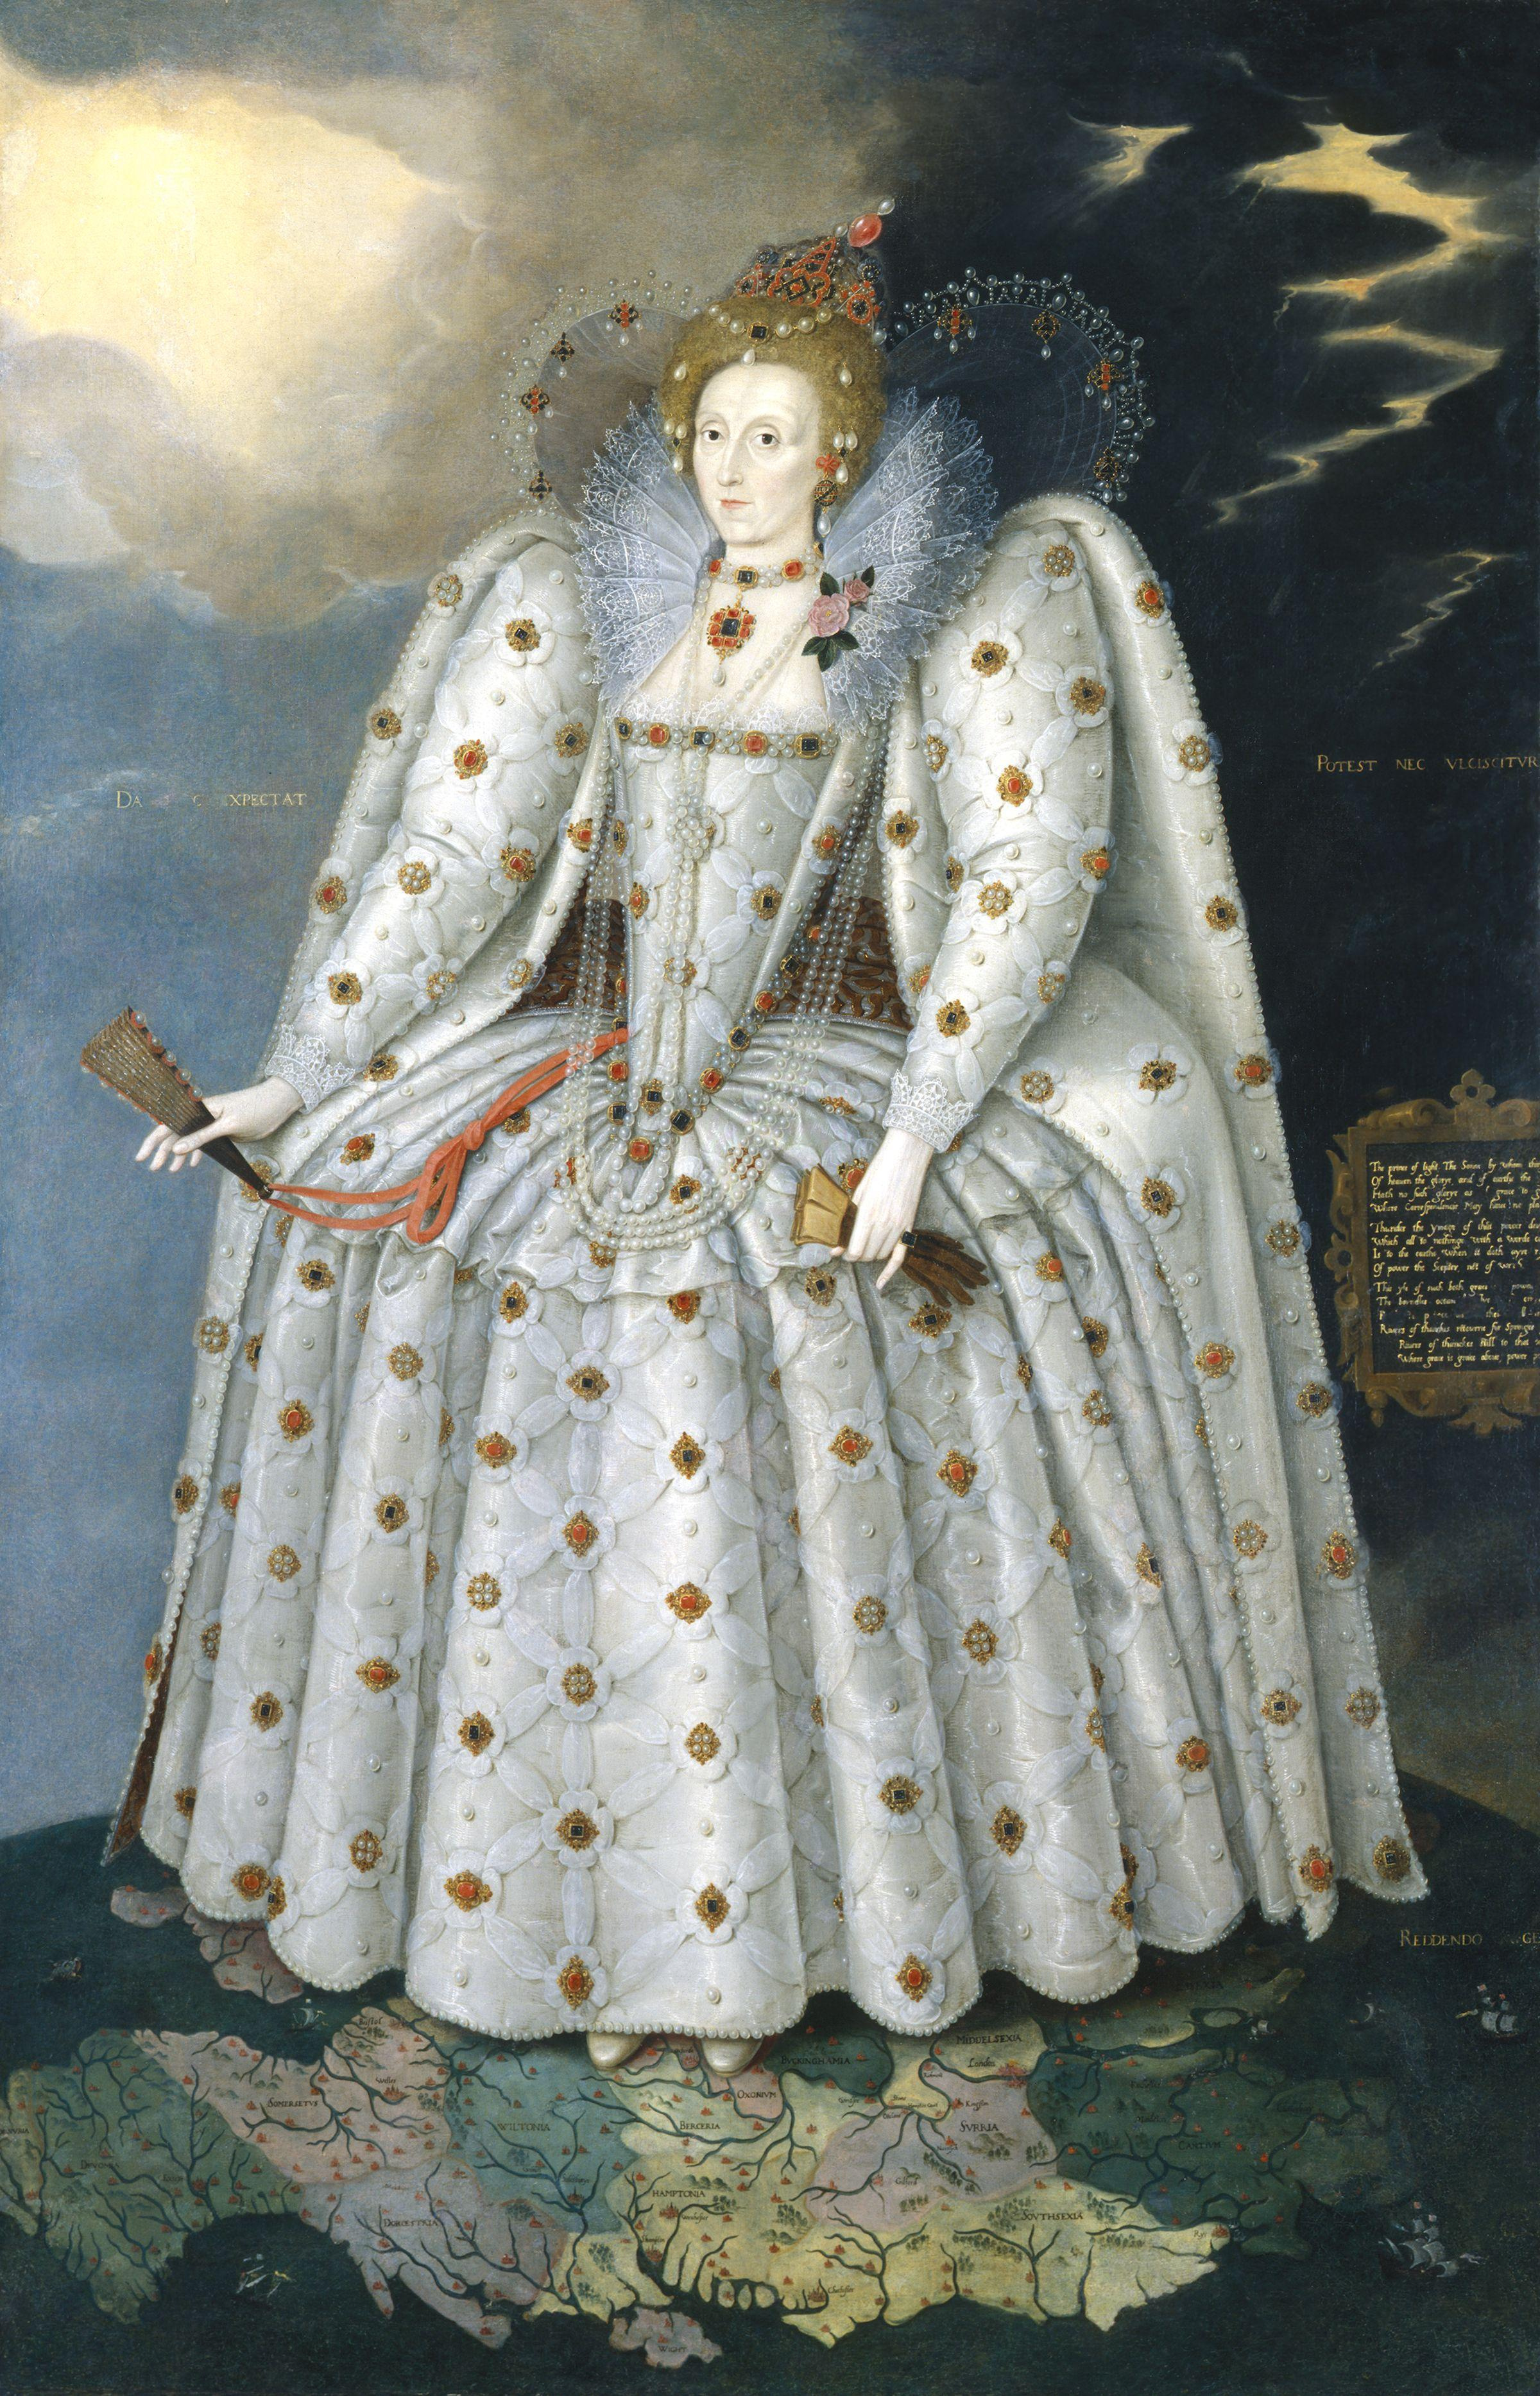 Queen Elizabeth I: Biography, Facts, Portraits & Information